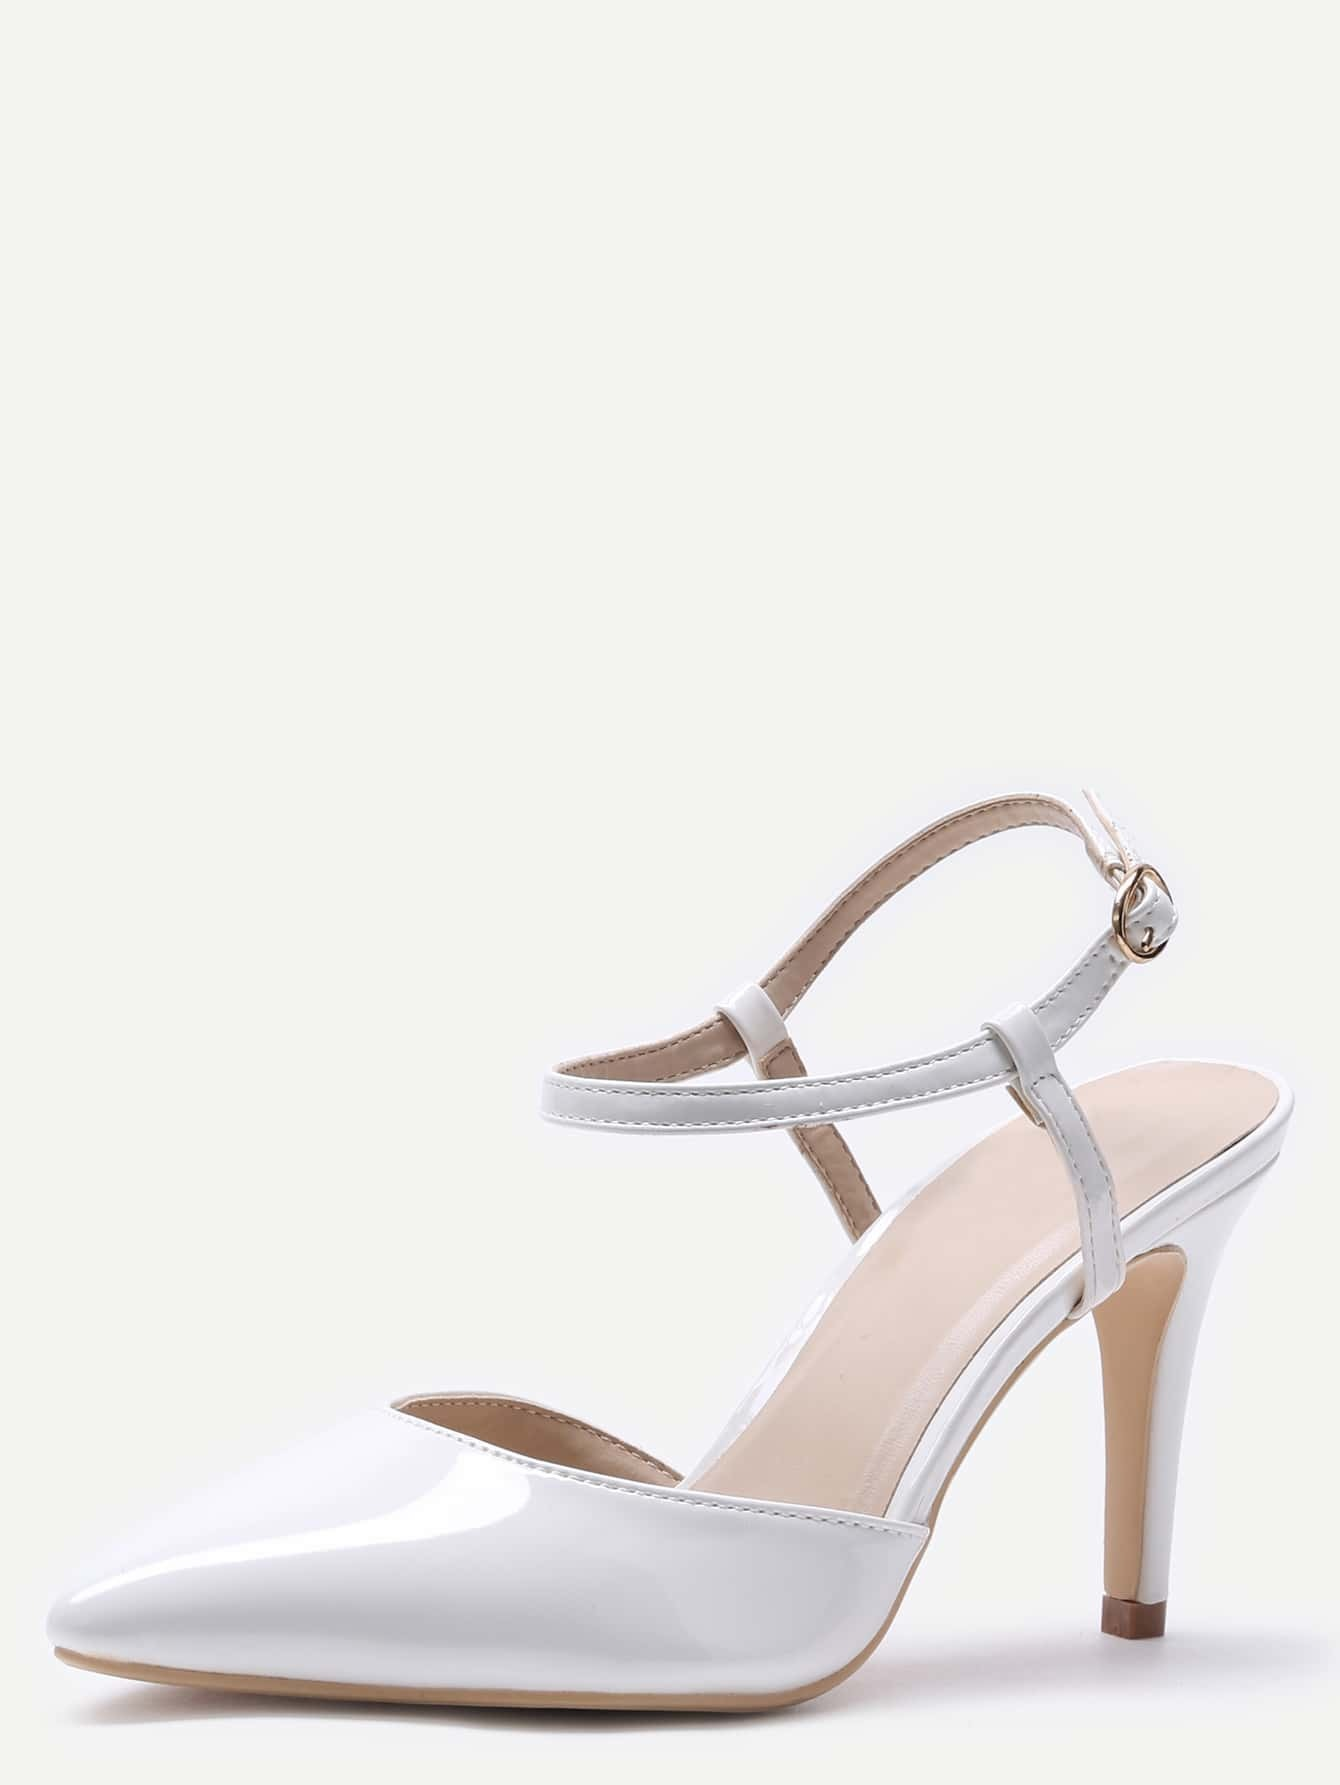 White Pointed Toe Slingback Ankle Strap Pumpsfor Women Romwe